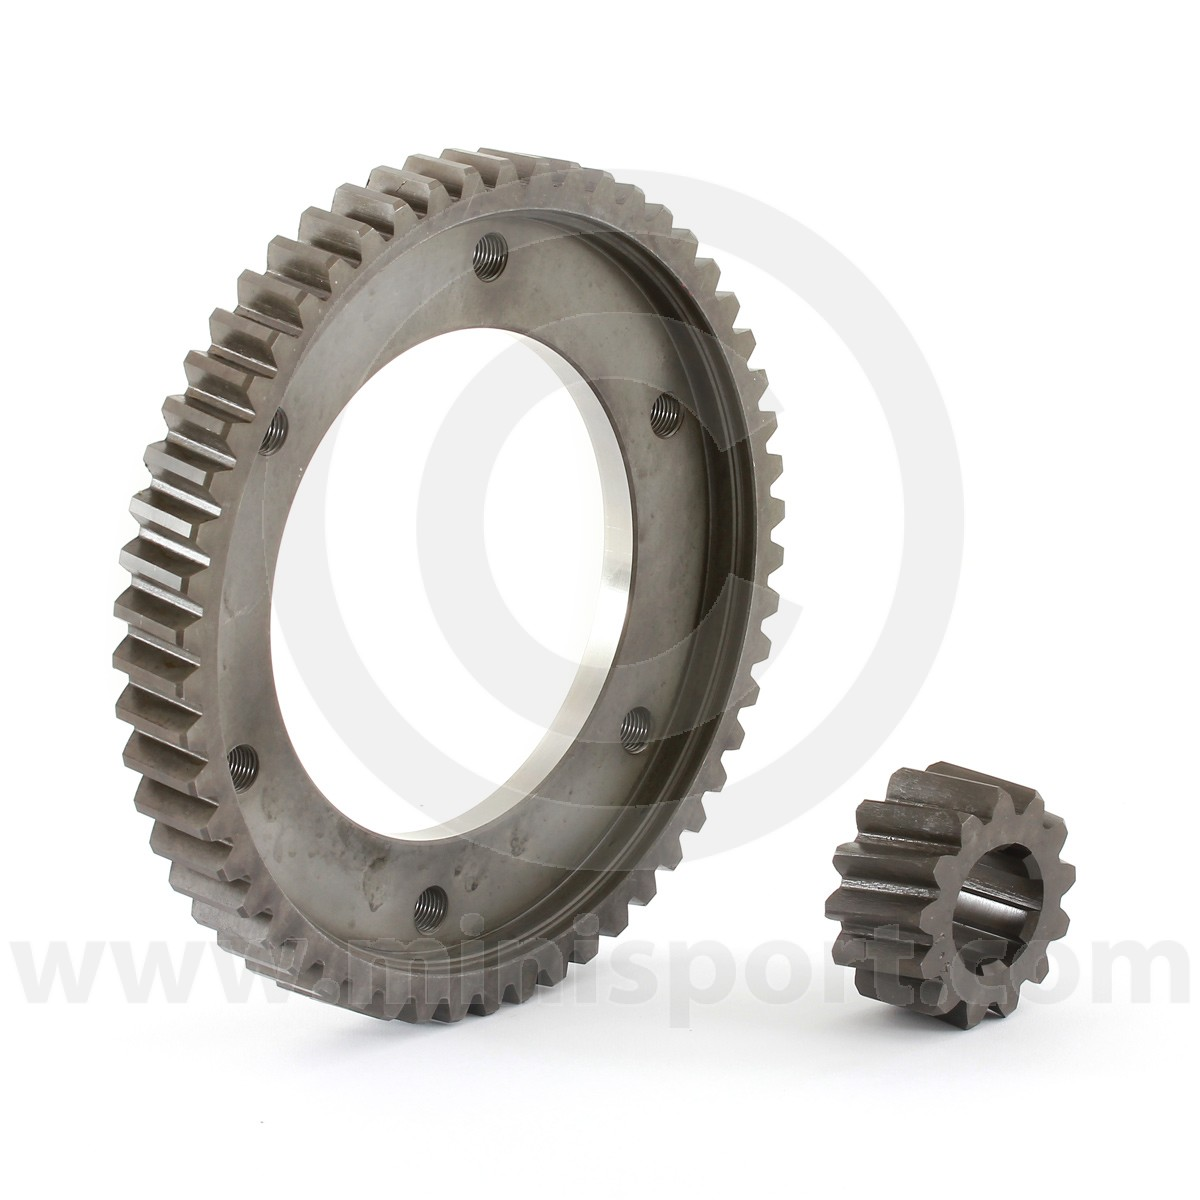 Ms3331 Mini Final Drive Kit Differential 1275 Gt With Alternator And Rocker Type Switches Lsd Fitment Semi Helical Gears 4071 Ratio